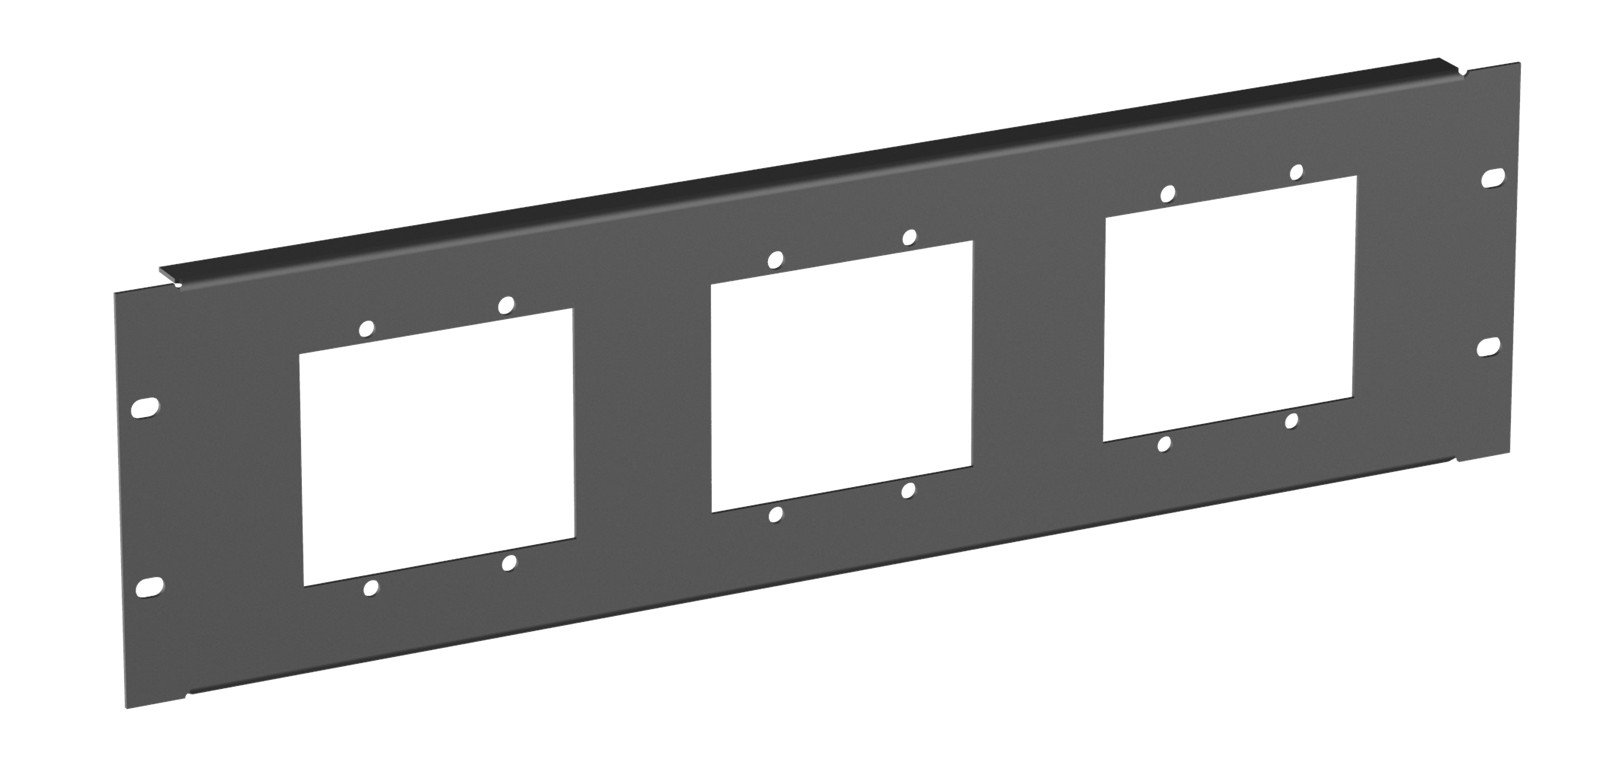 3RU Rack Mount Kit for BlueBridge Wall Plate Controllers